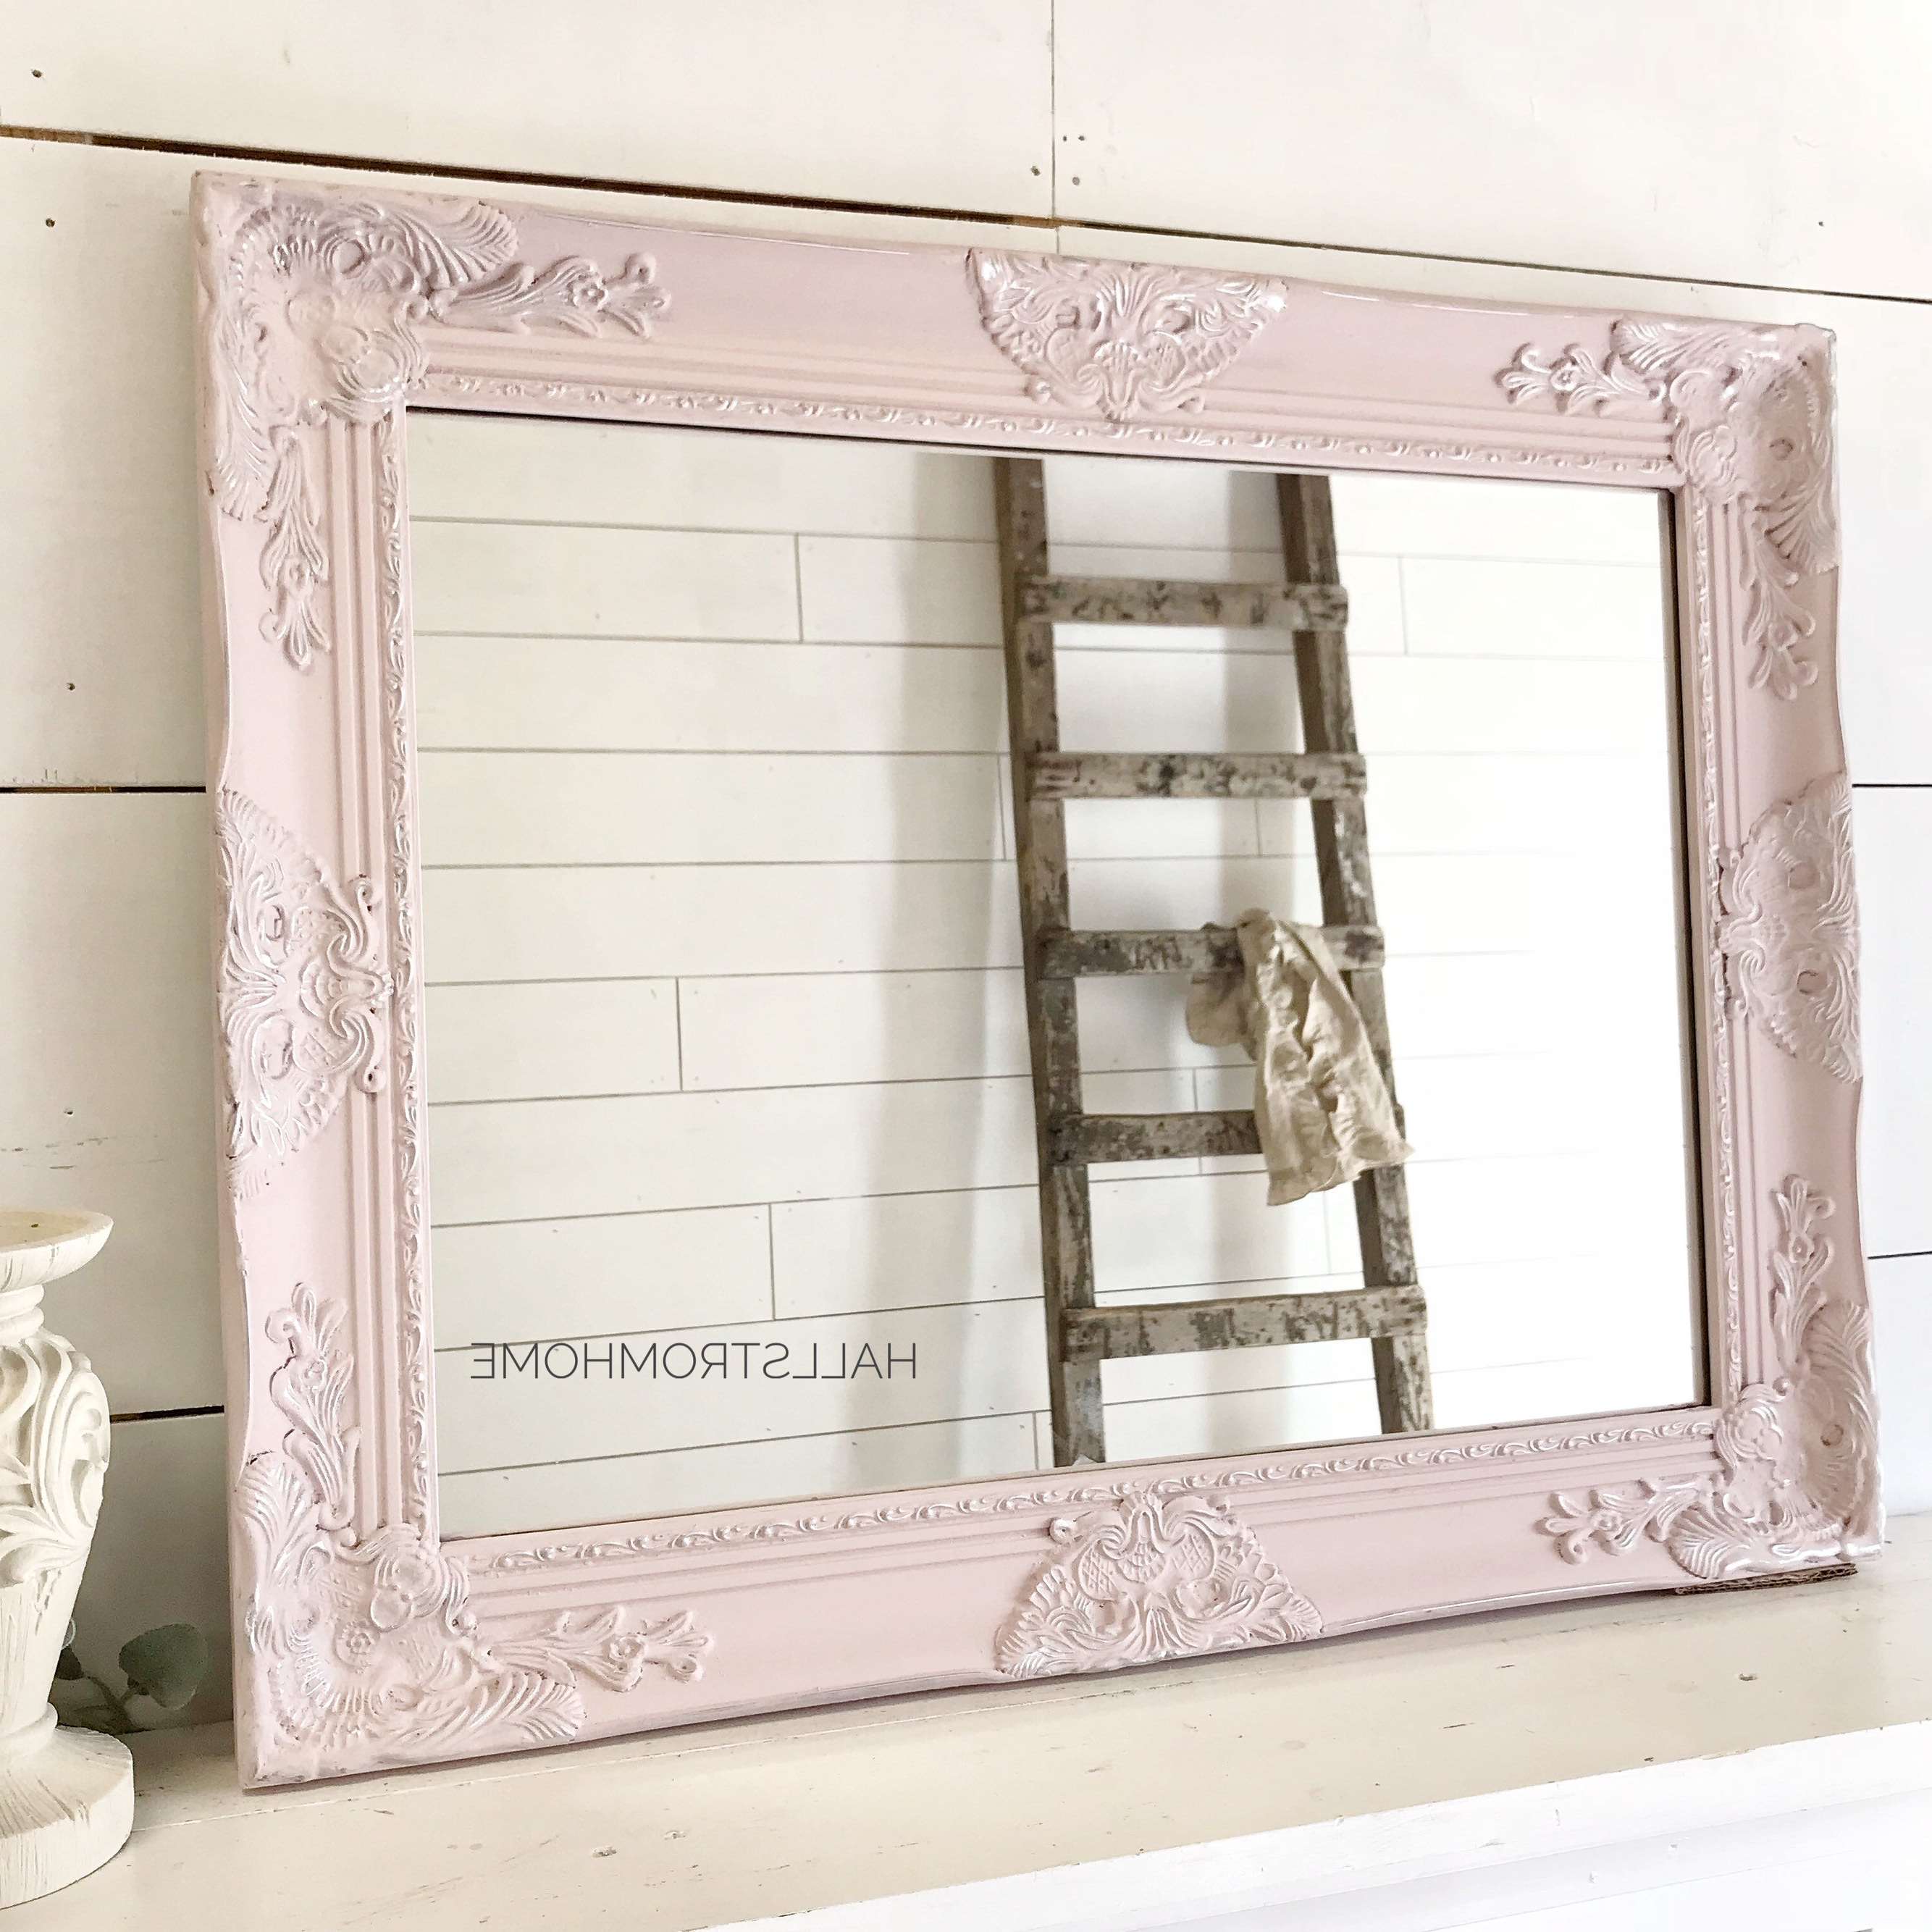 Well Known Bathroom Mirror/ Vanity Mirror/ Shabby Chic Decor/ Wedding Seating Chart/ Girls Room Nursery Decor/ Pink Wall Decor Throughout Girls Pink Wall Mirrors (View 15 of 20)